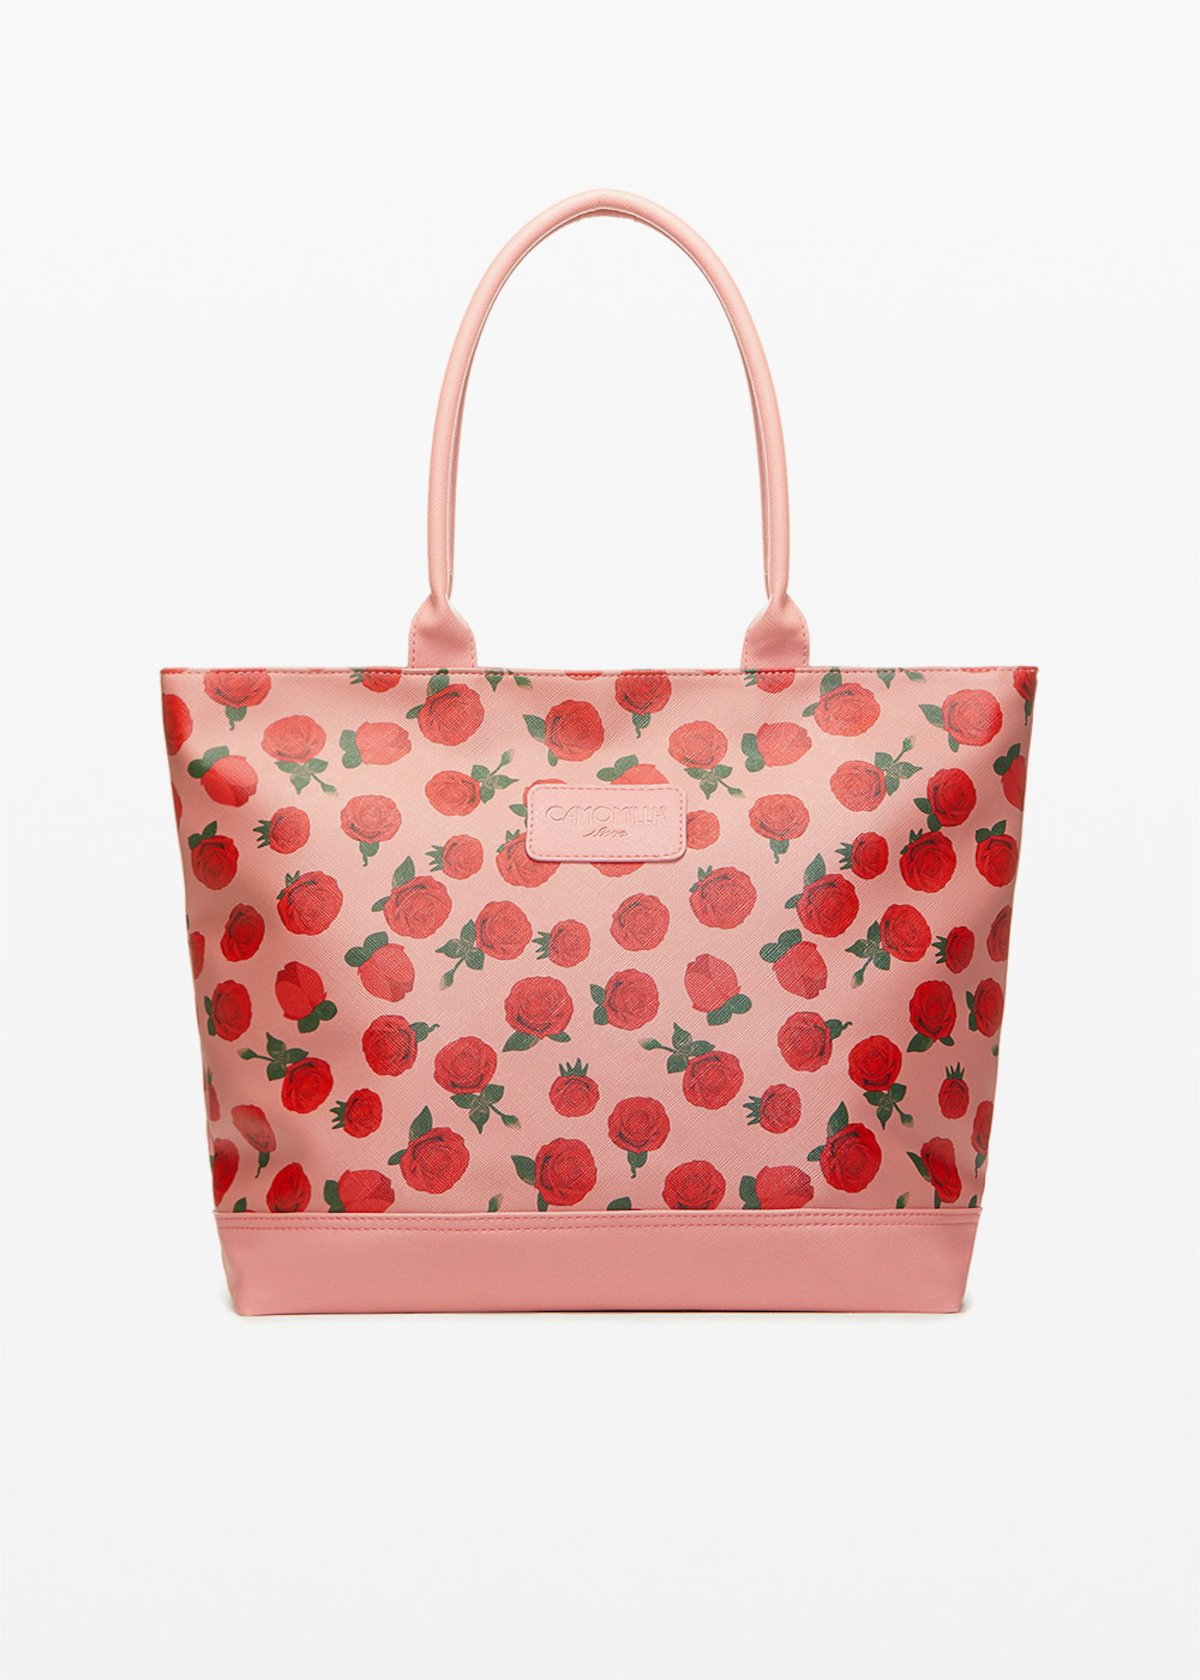 Trendros6 faux leather shopping bag with roses print - Calcite Fantasia - Woman